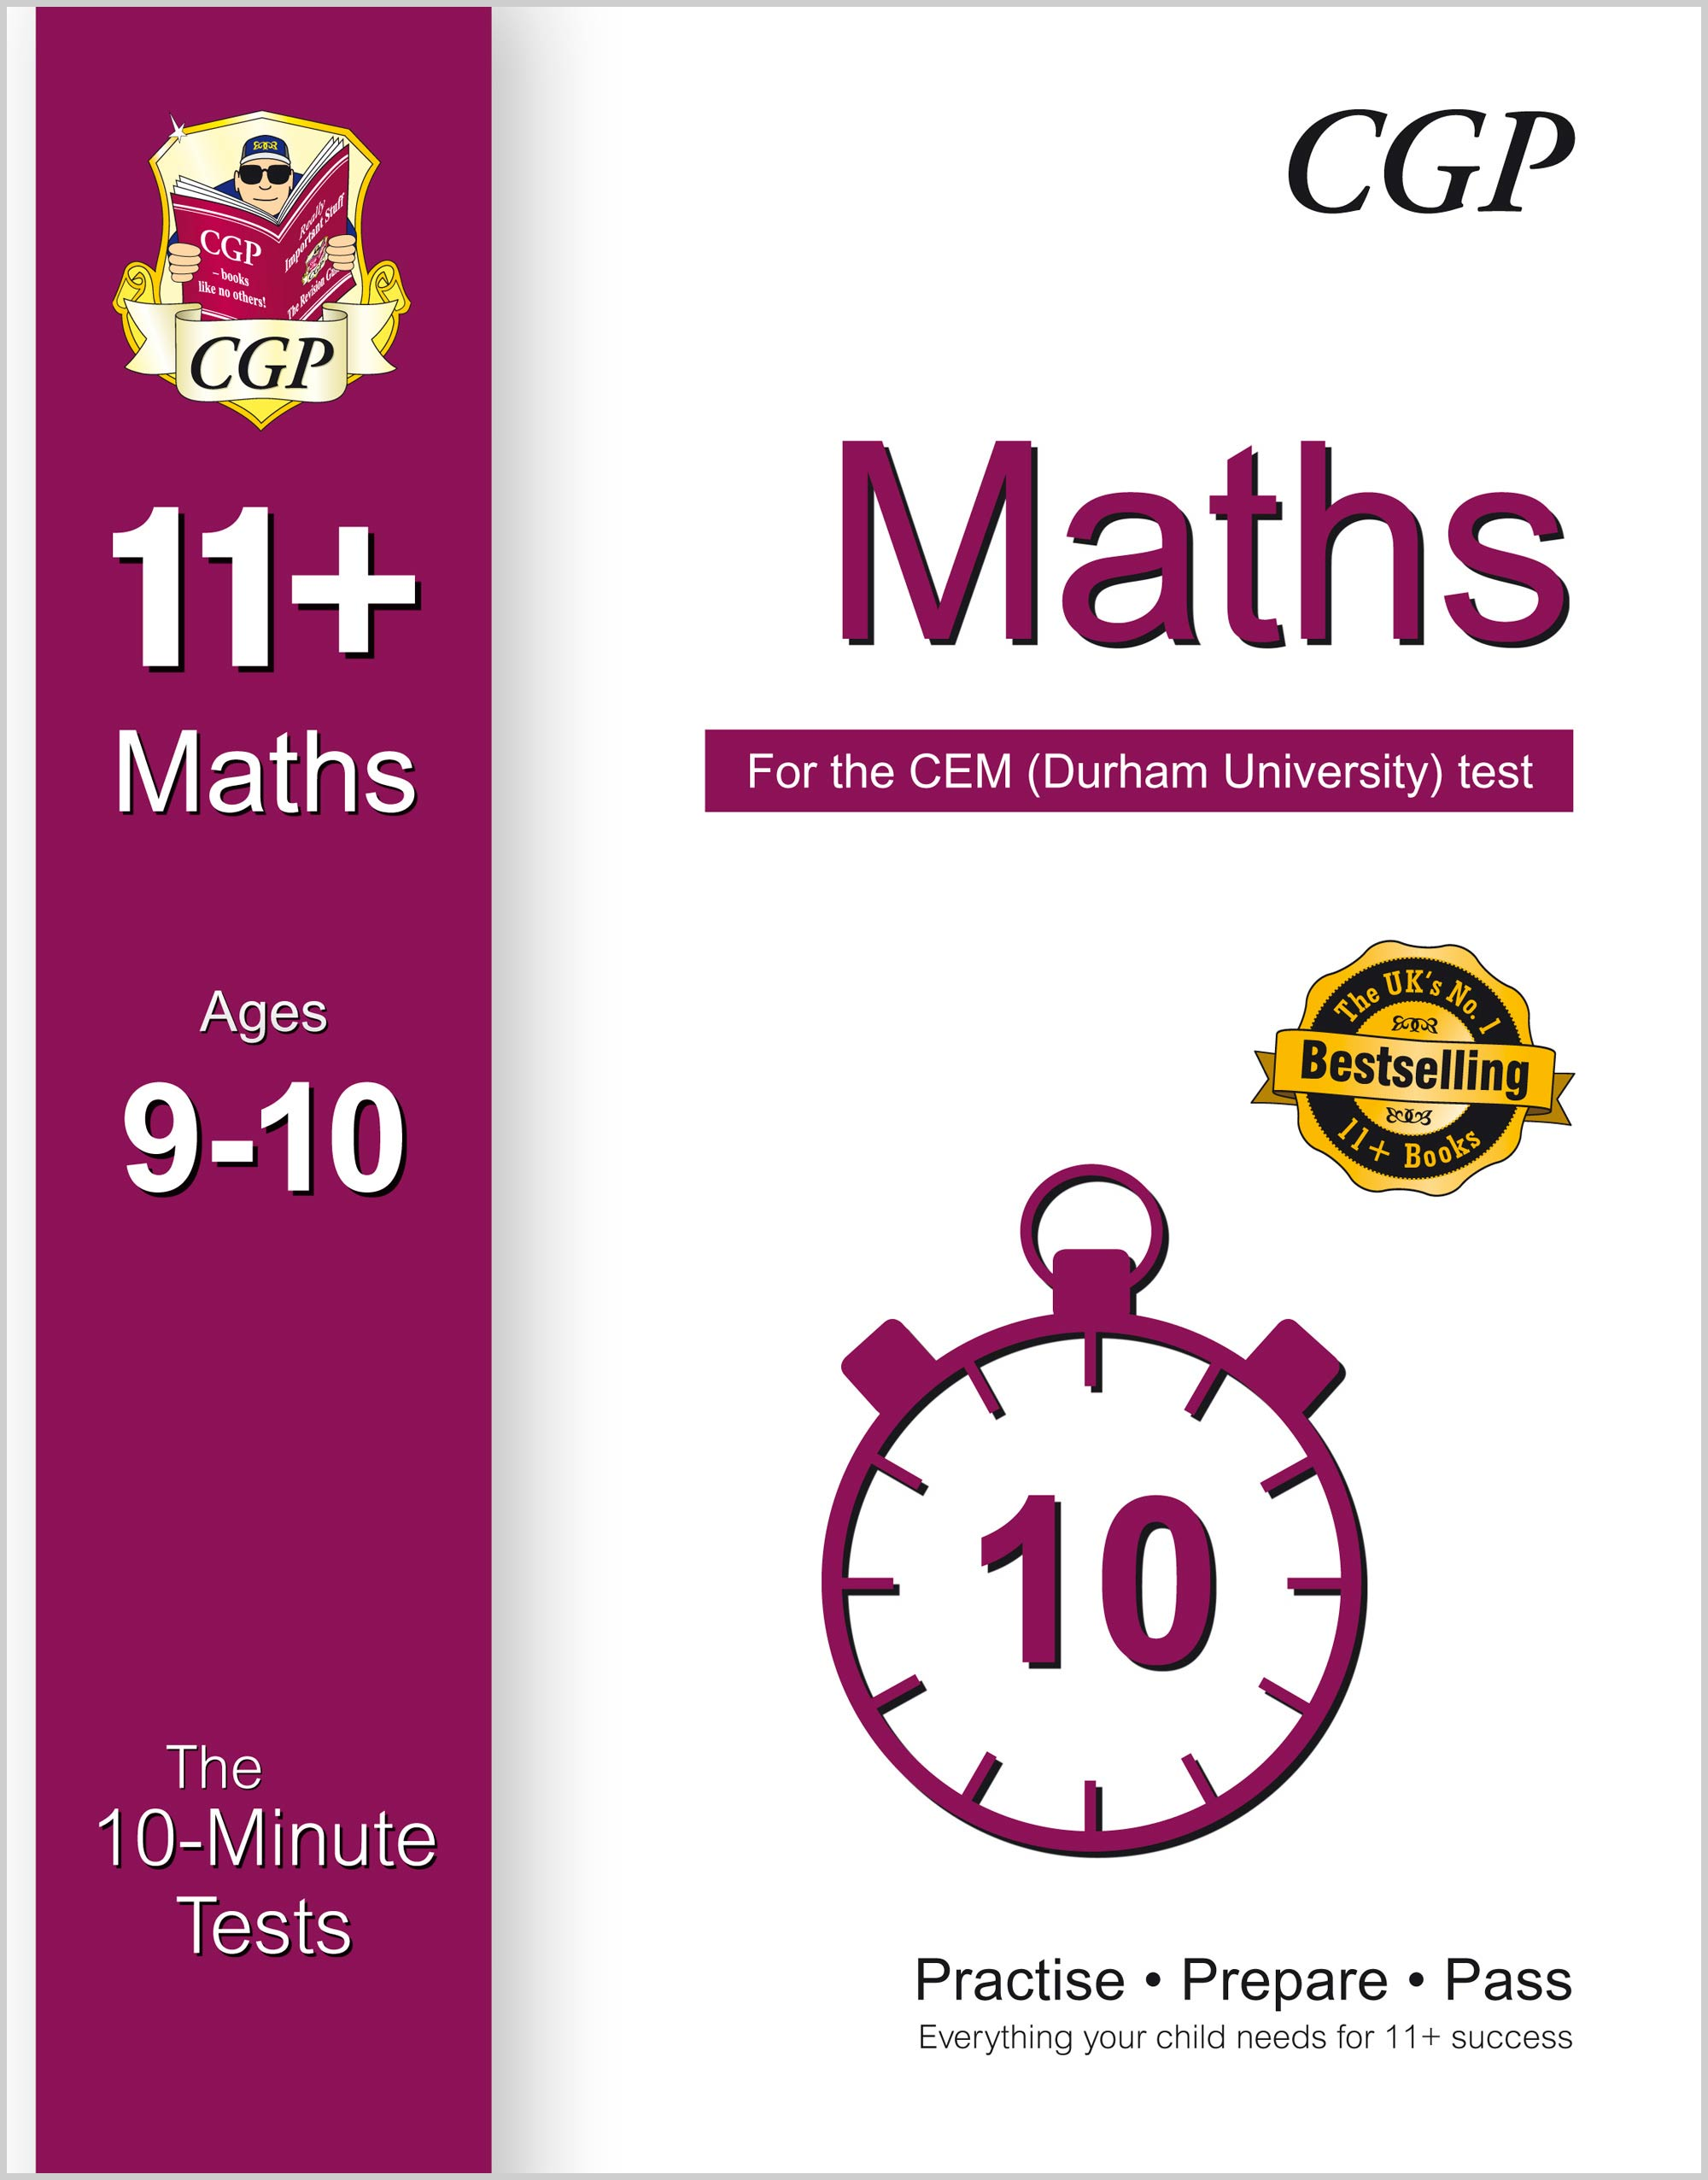 M5XPDE1 - 10-Minute Tests for 11+ Maths Ages 9-10 - CEM Test